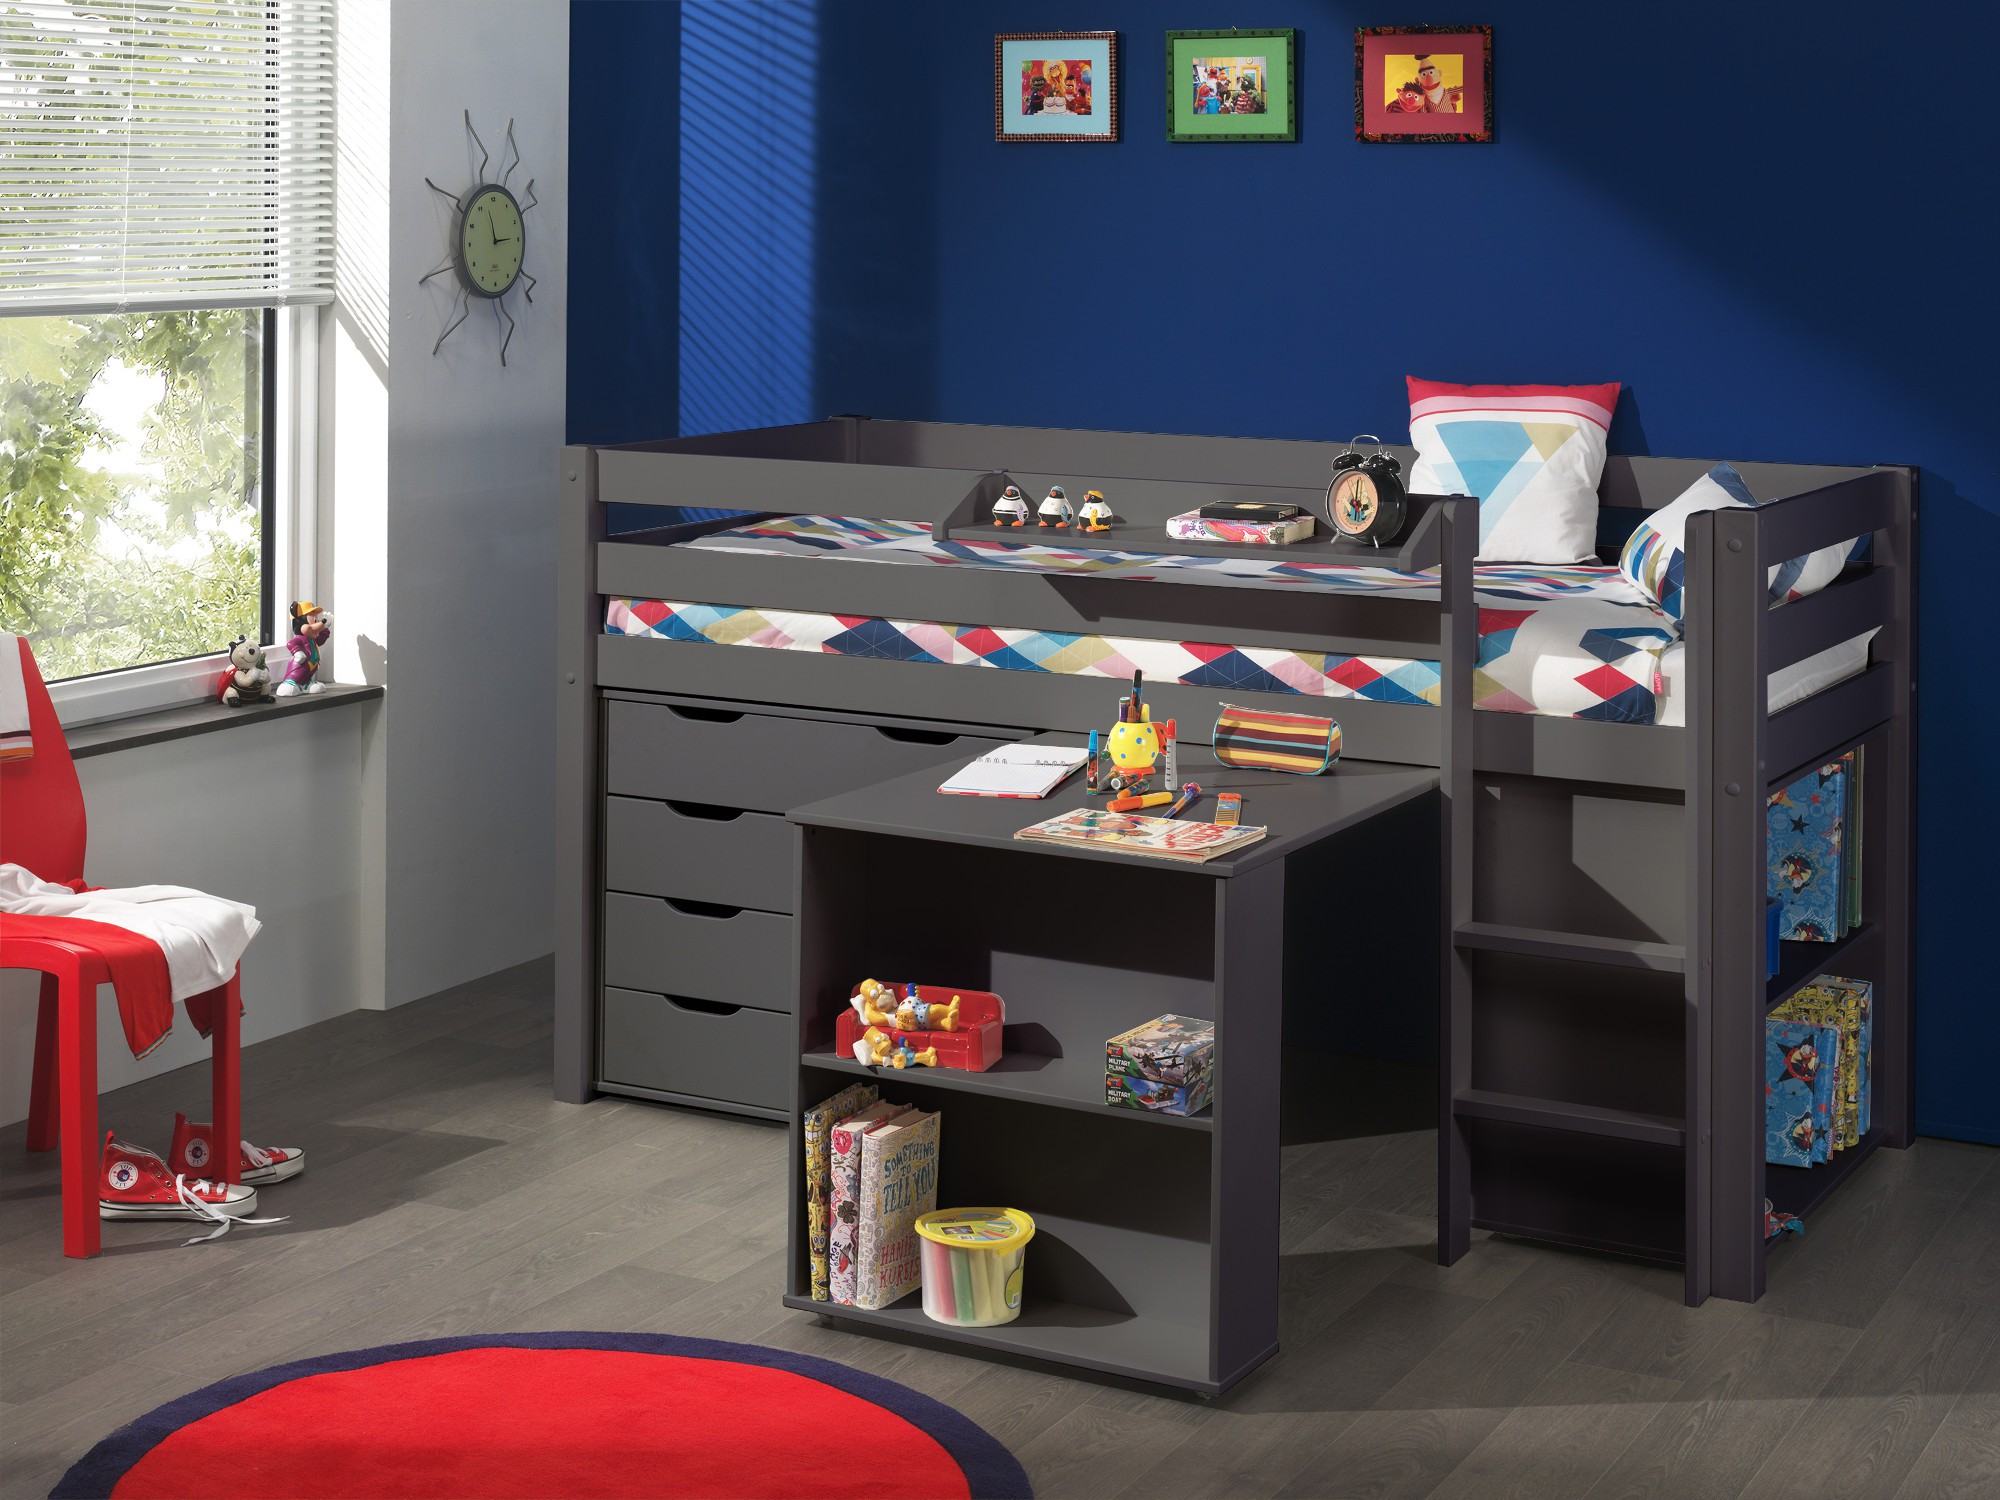 funktions hochbett pino mit kommode 4 schubladen kiefer anthrazit teilmassiv kinder. Black Bedroom Furniture Sets. Home Design Ideas